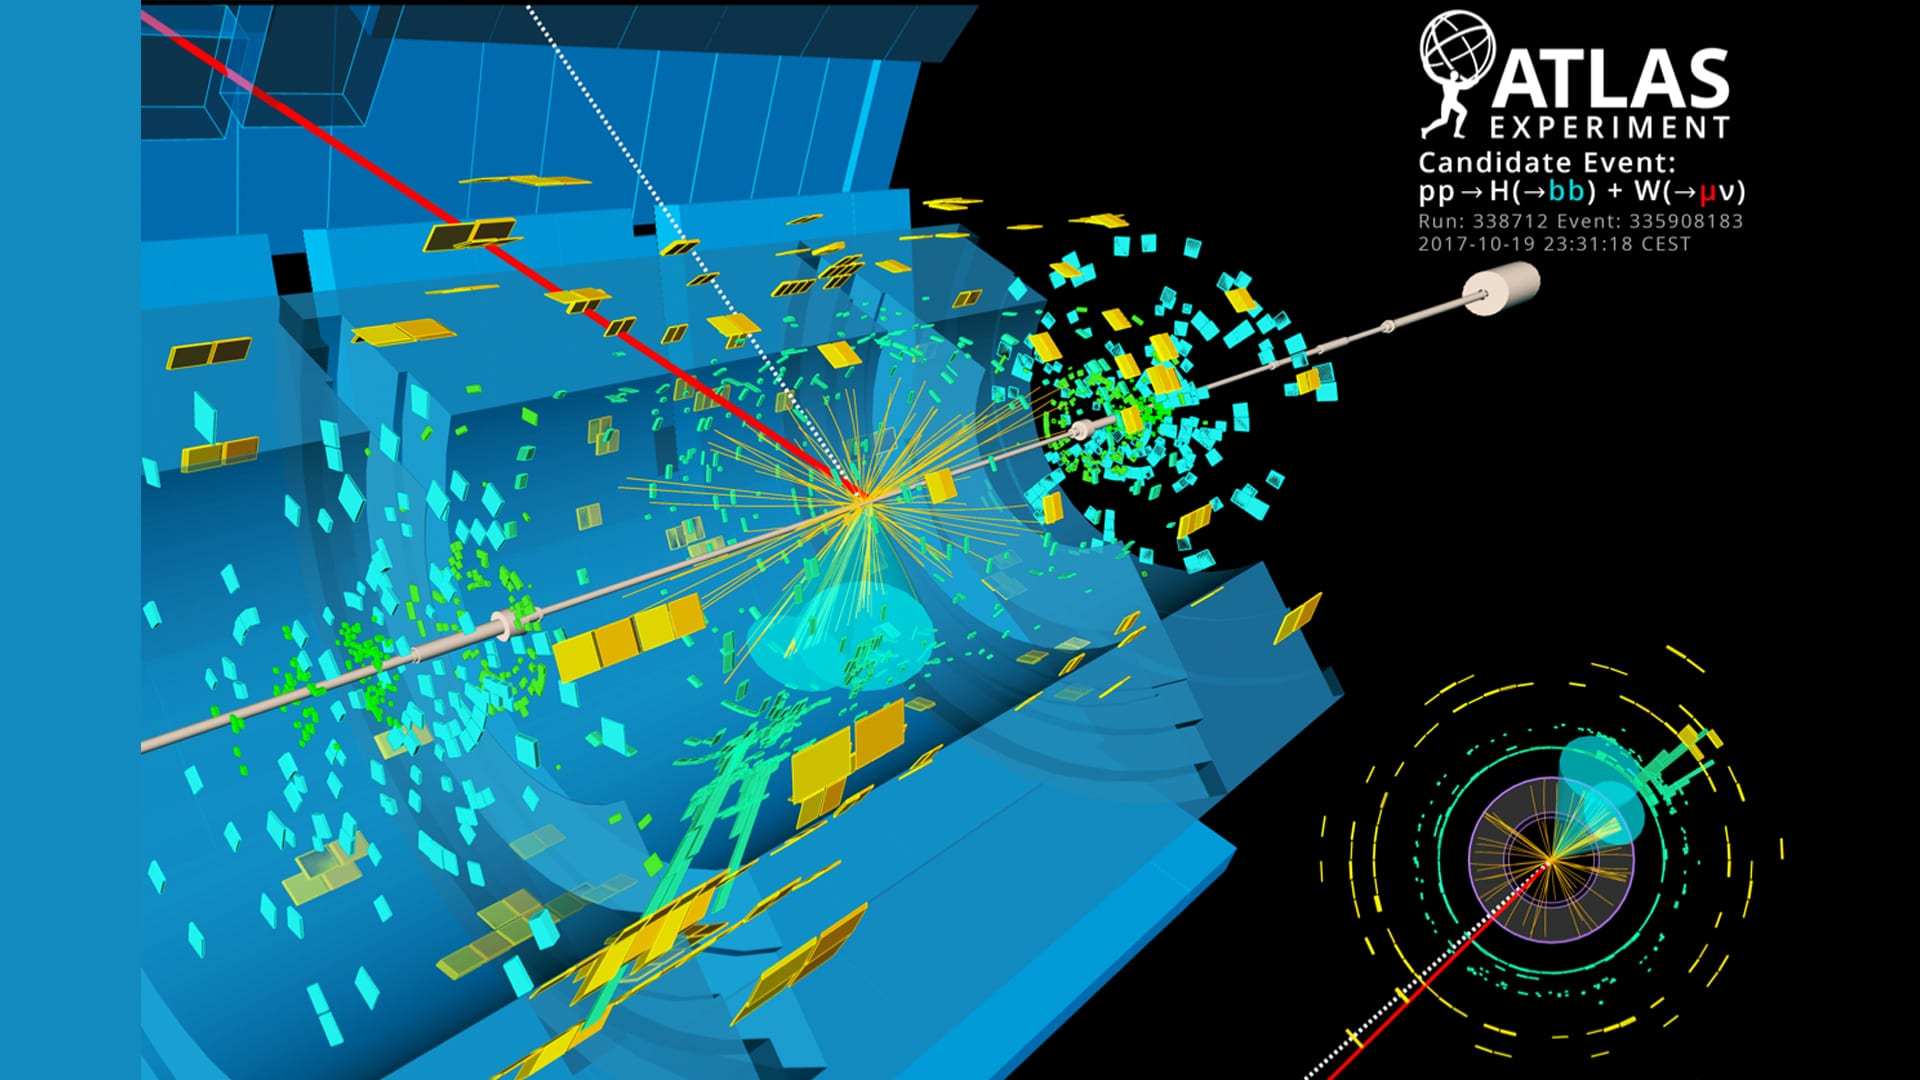 SMU Physicist Explains Significance of Latest Cern Discovery Related to the Higgs Boson